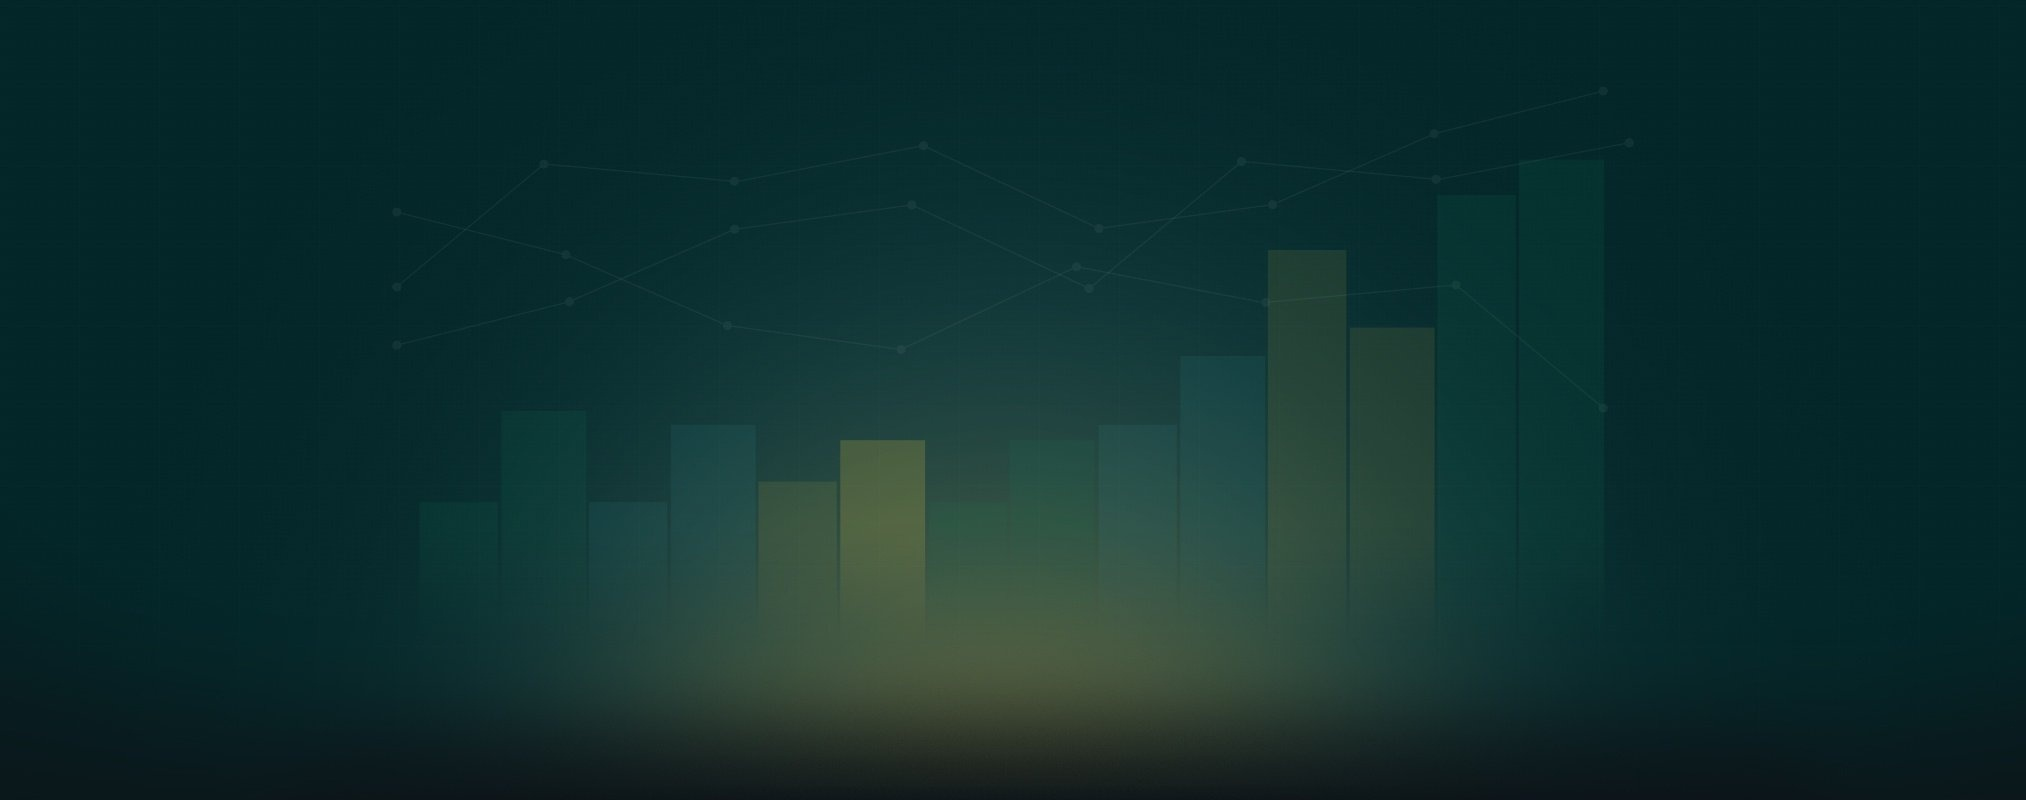 ledger-header-background